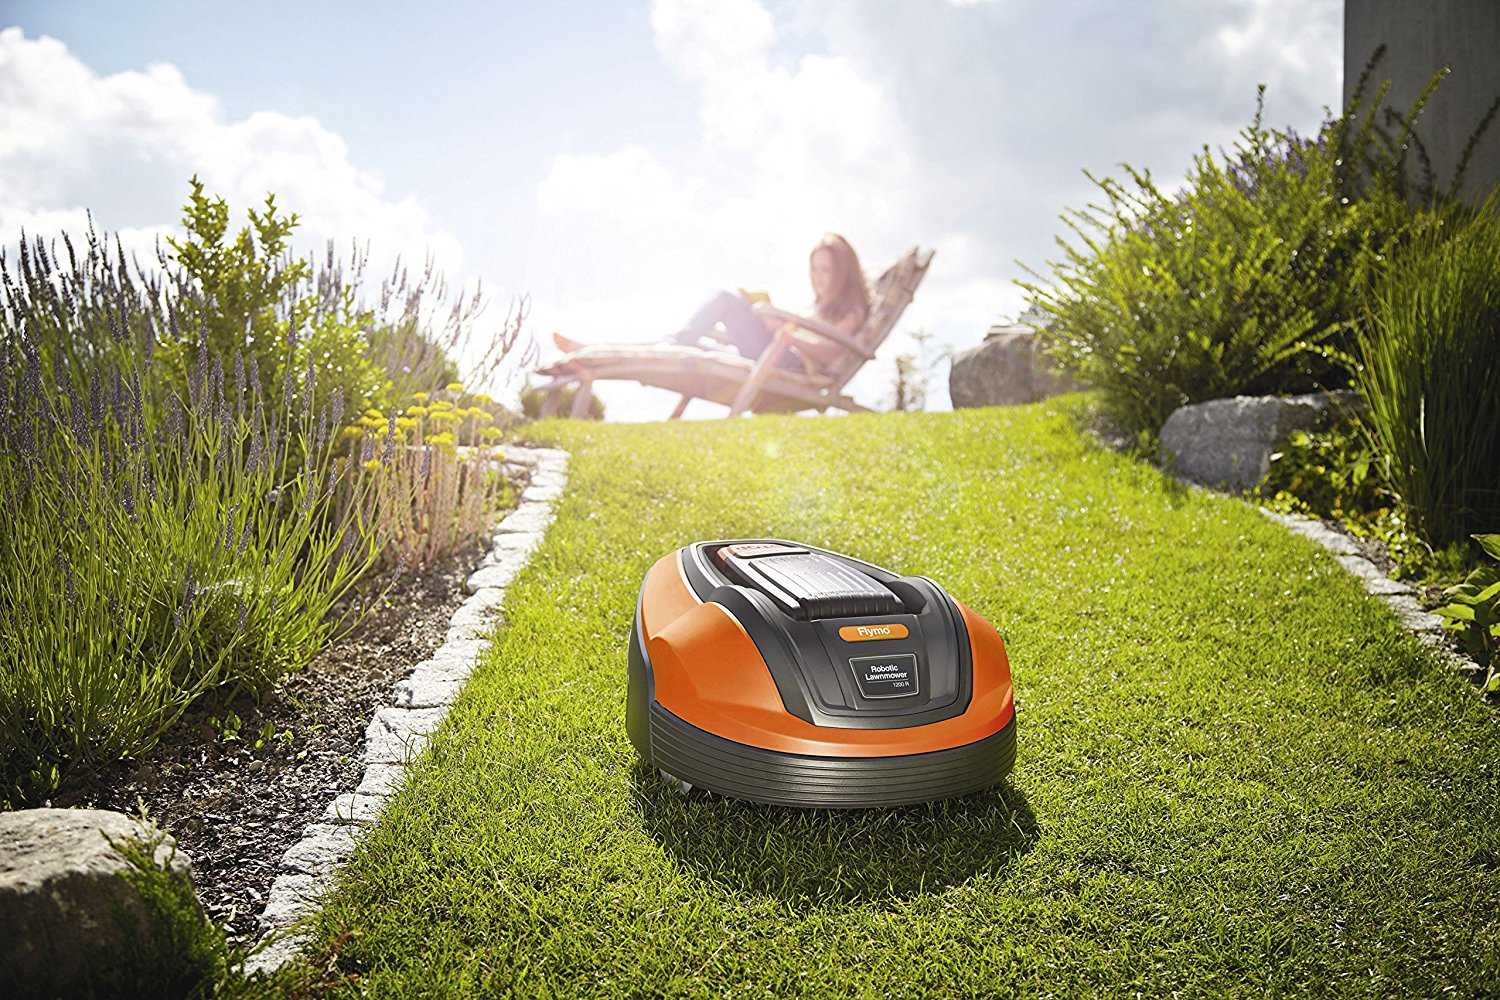 Flymo Lithium-ion Robotic Lawnmower 1200 R, Review